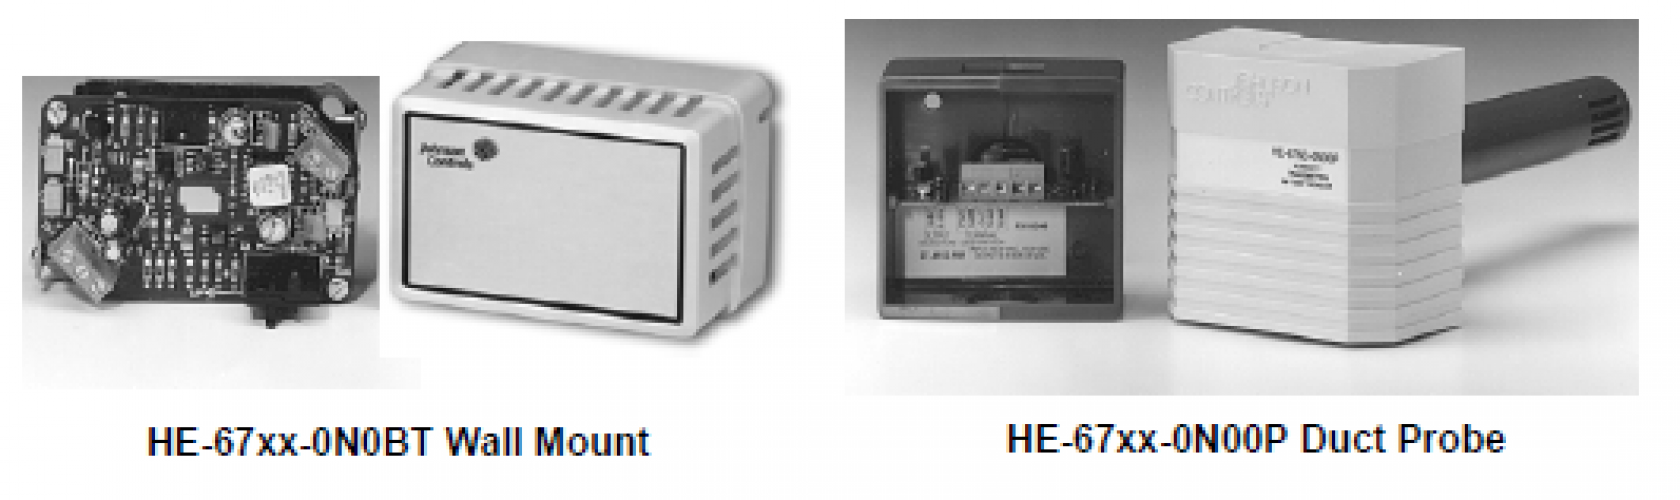 HE-67xx Series Humidity Element with Temperature Sensors